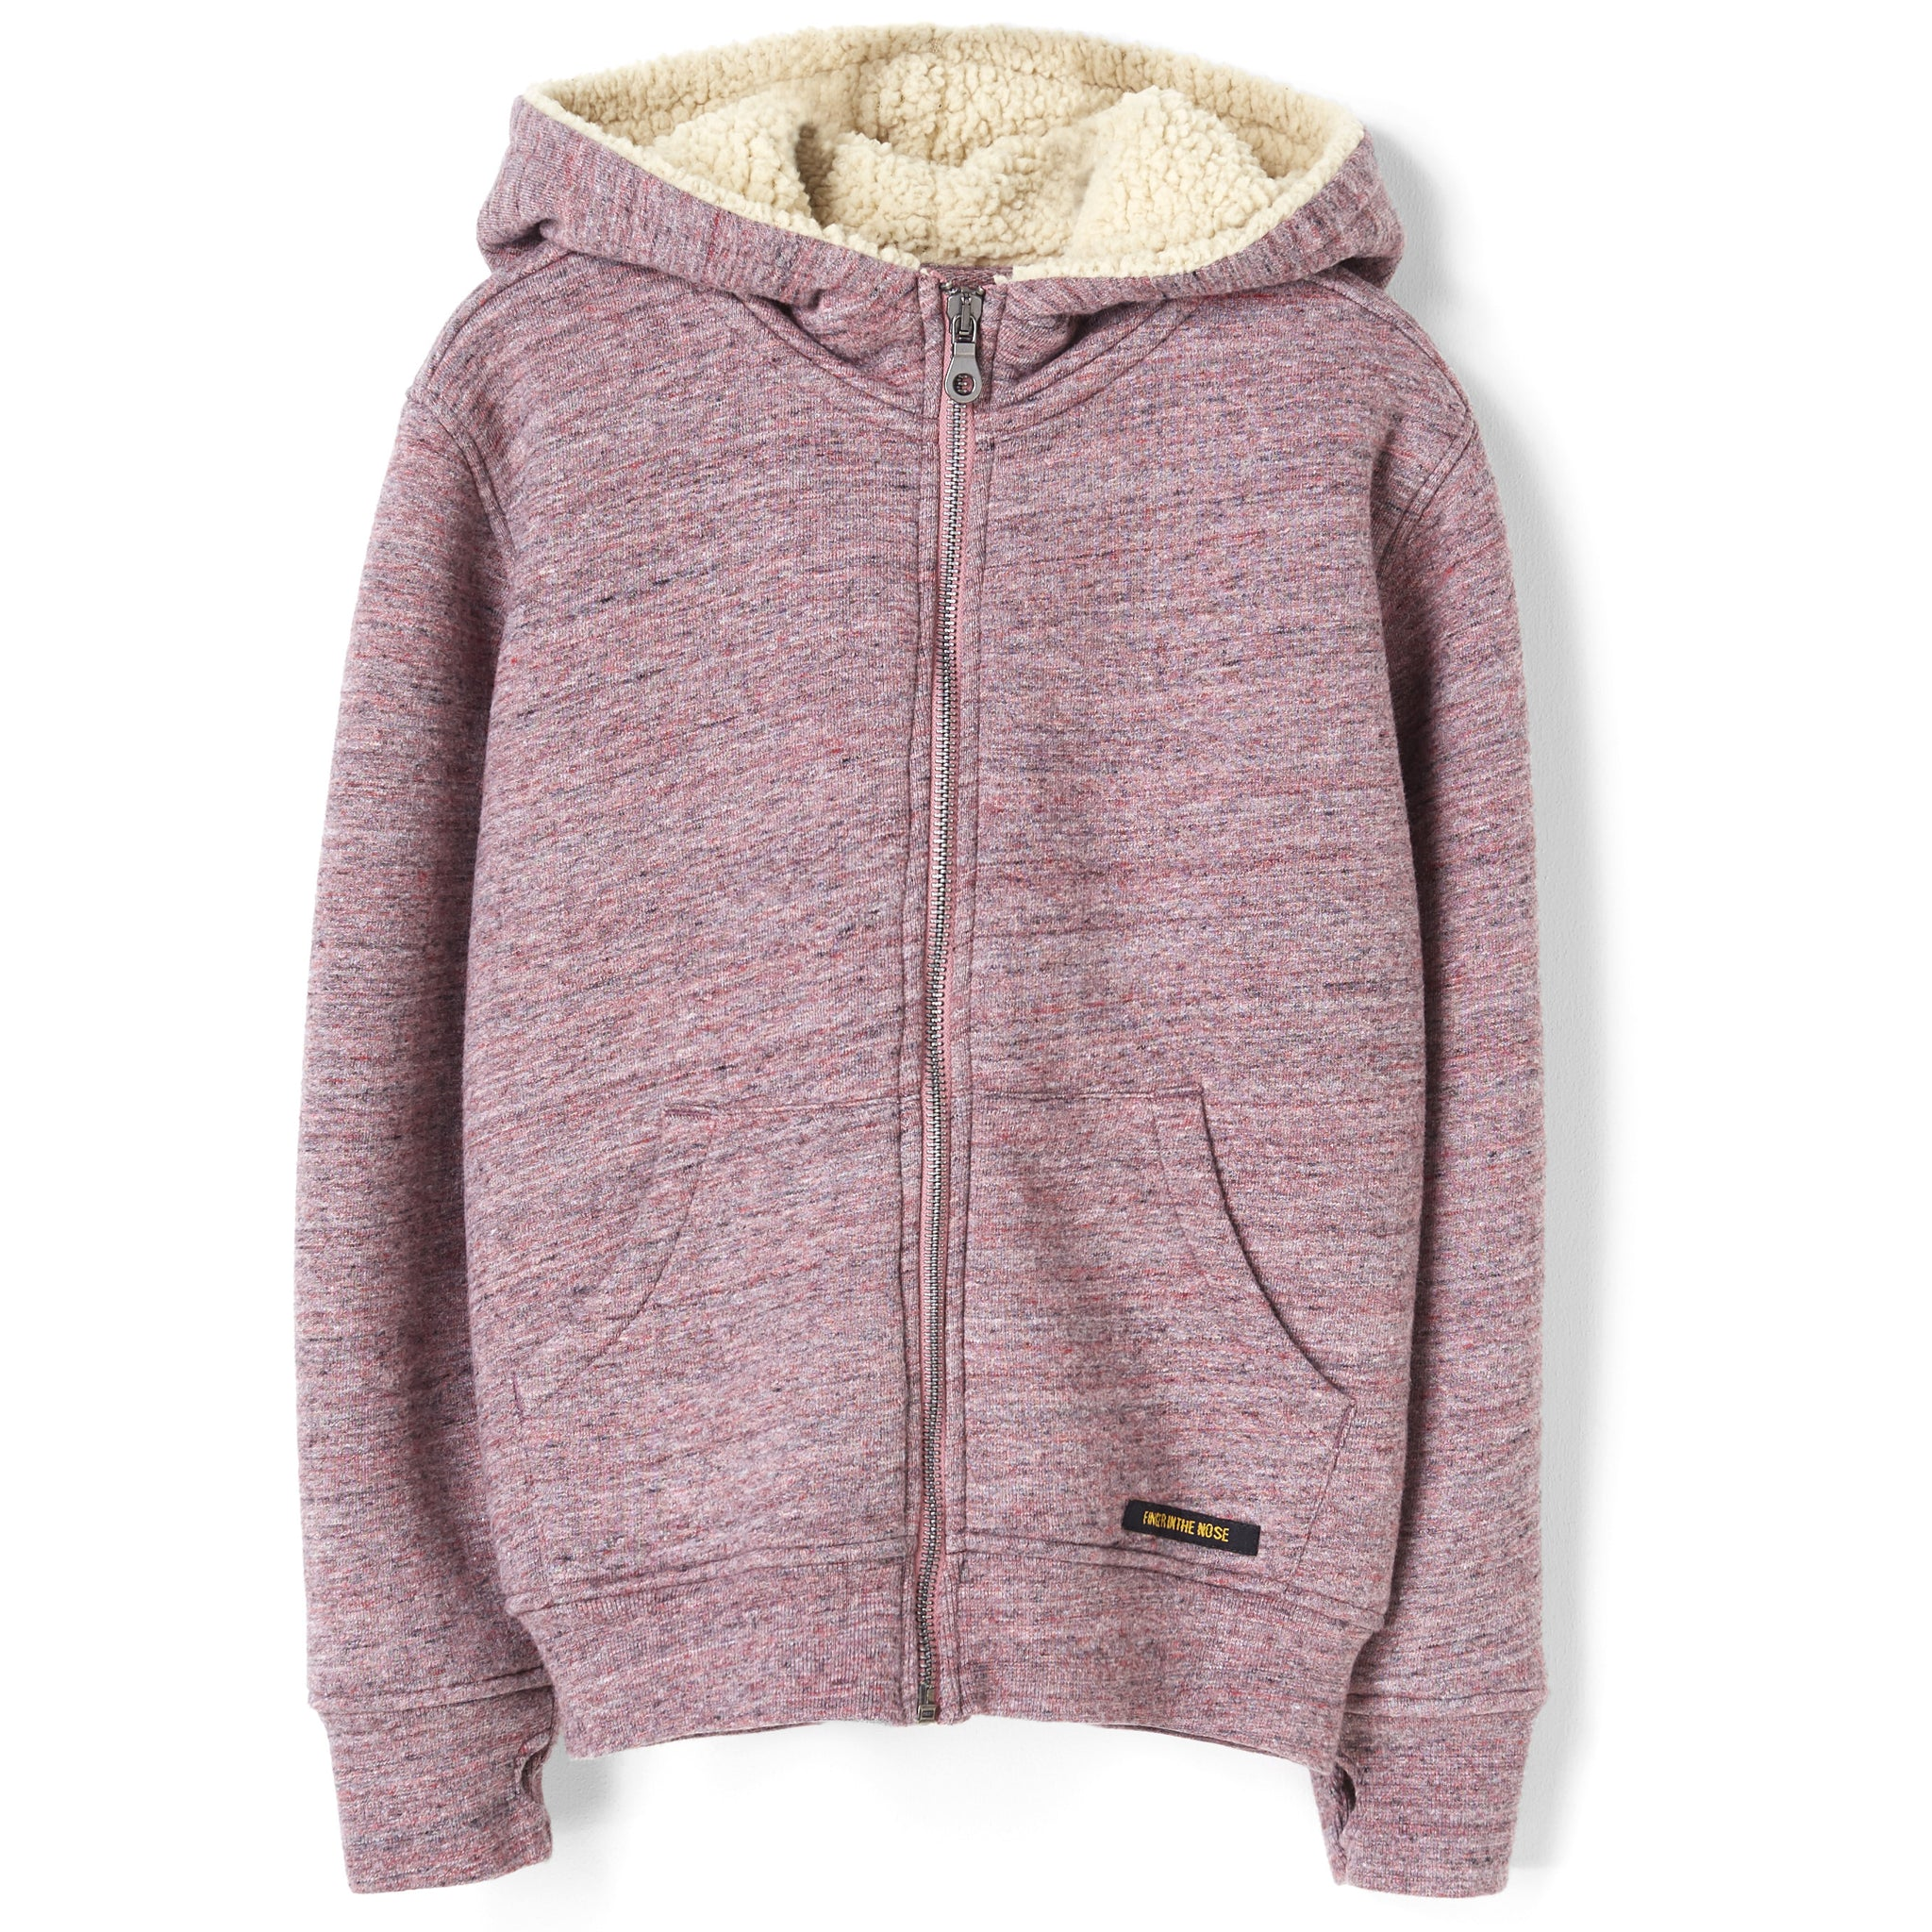 HOOPER Heather Pink - Zipped  Hoodie